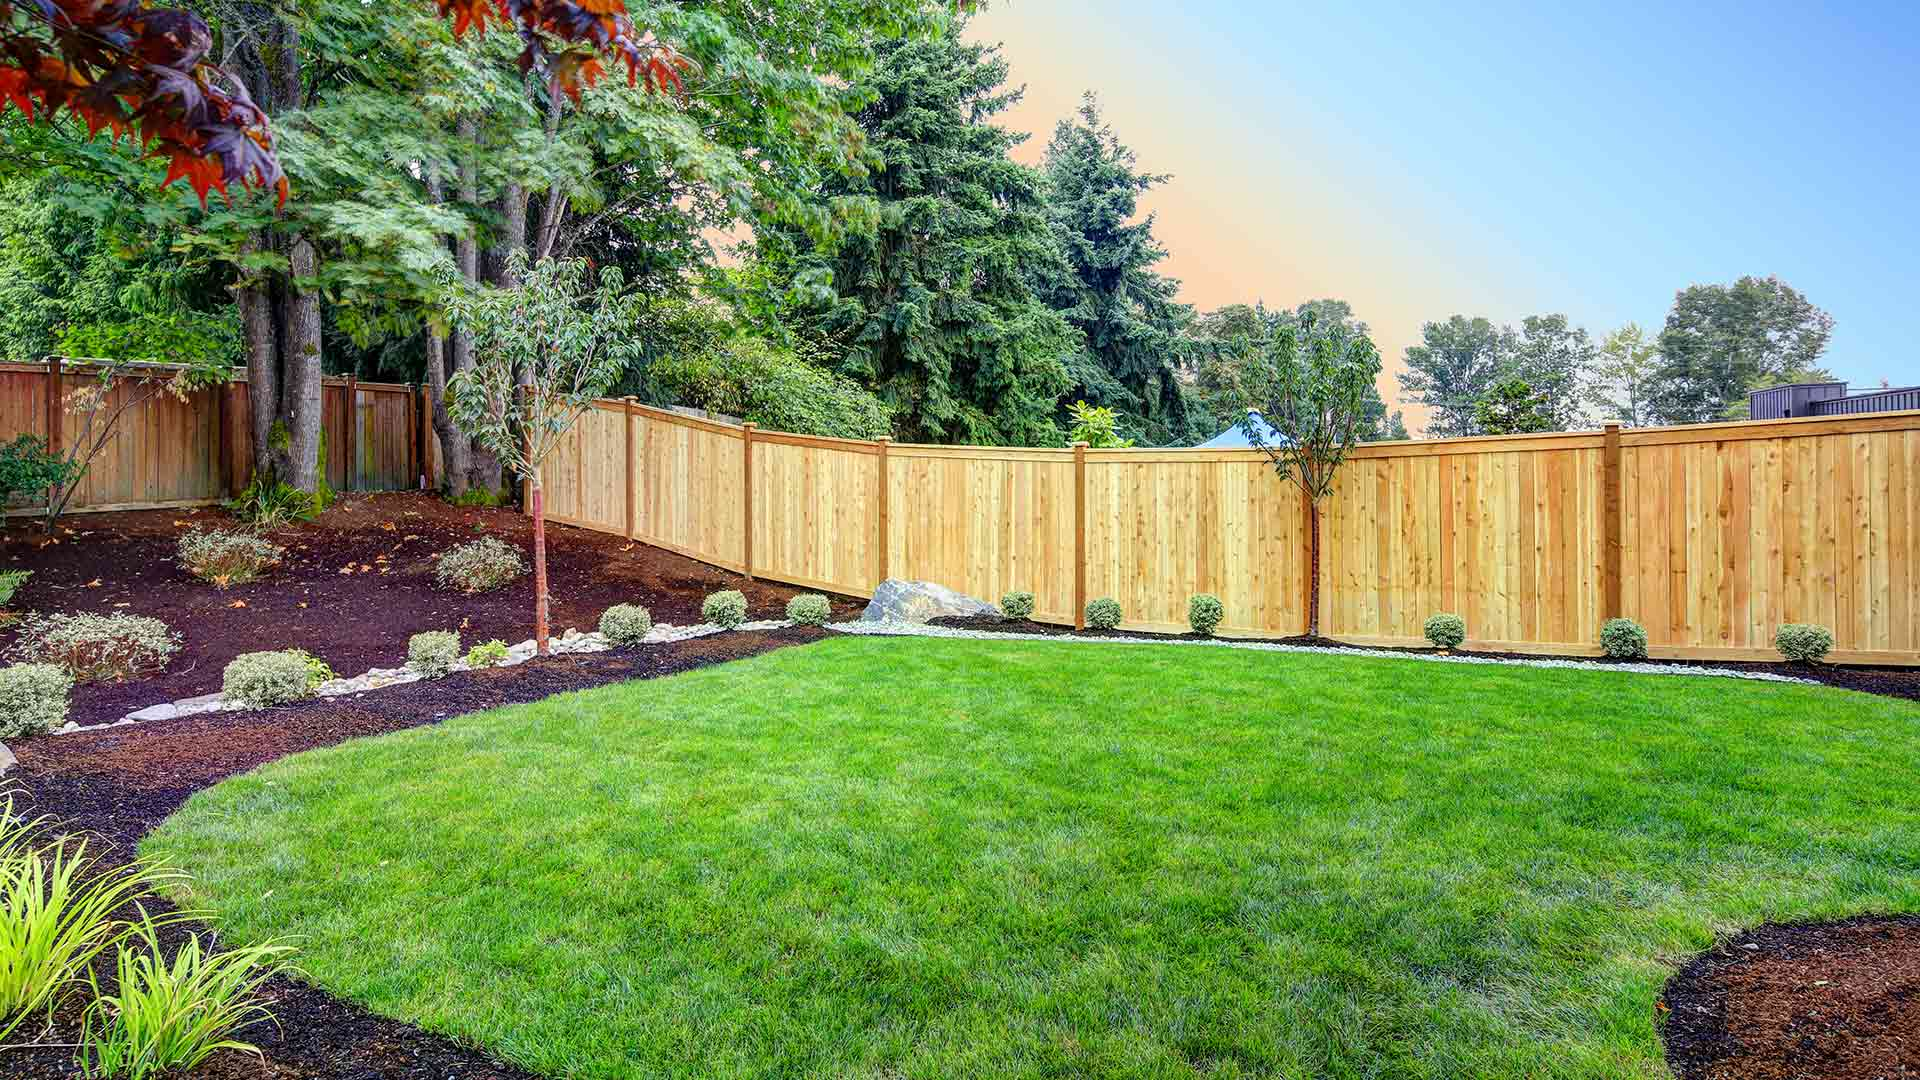 Lawn and landscaping in Sauk Rapids, MN that receives routine maintenance and care services.